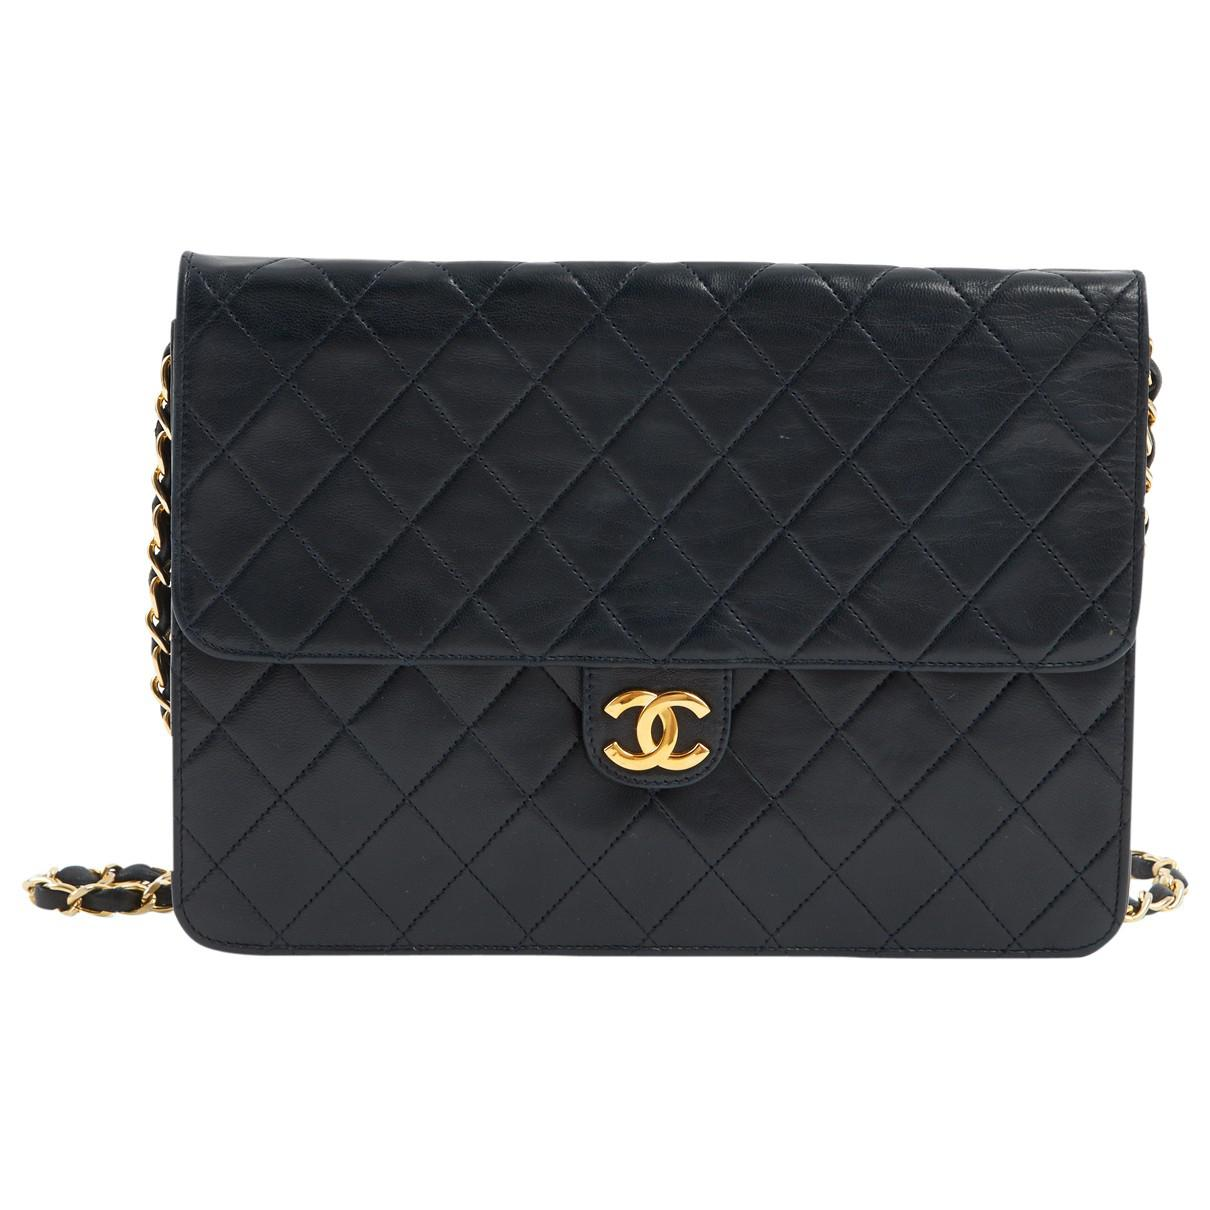 Chanel Pre-owned - Leather clutch bag osY0S